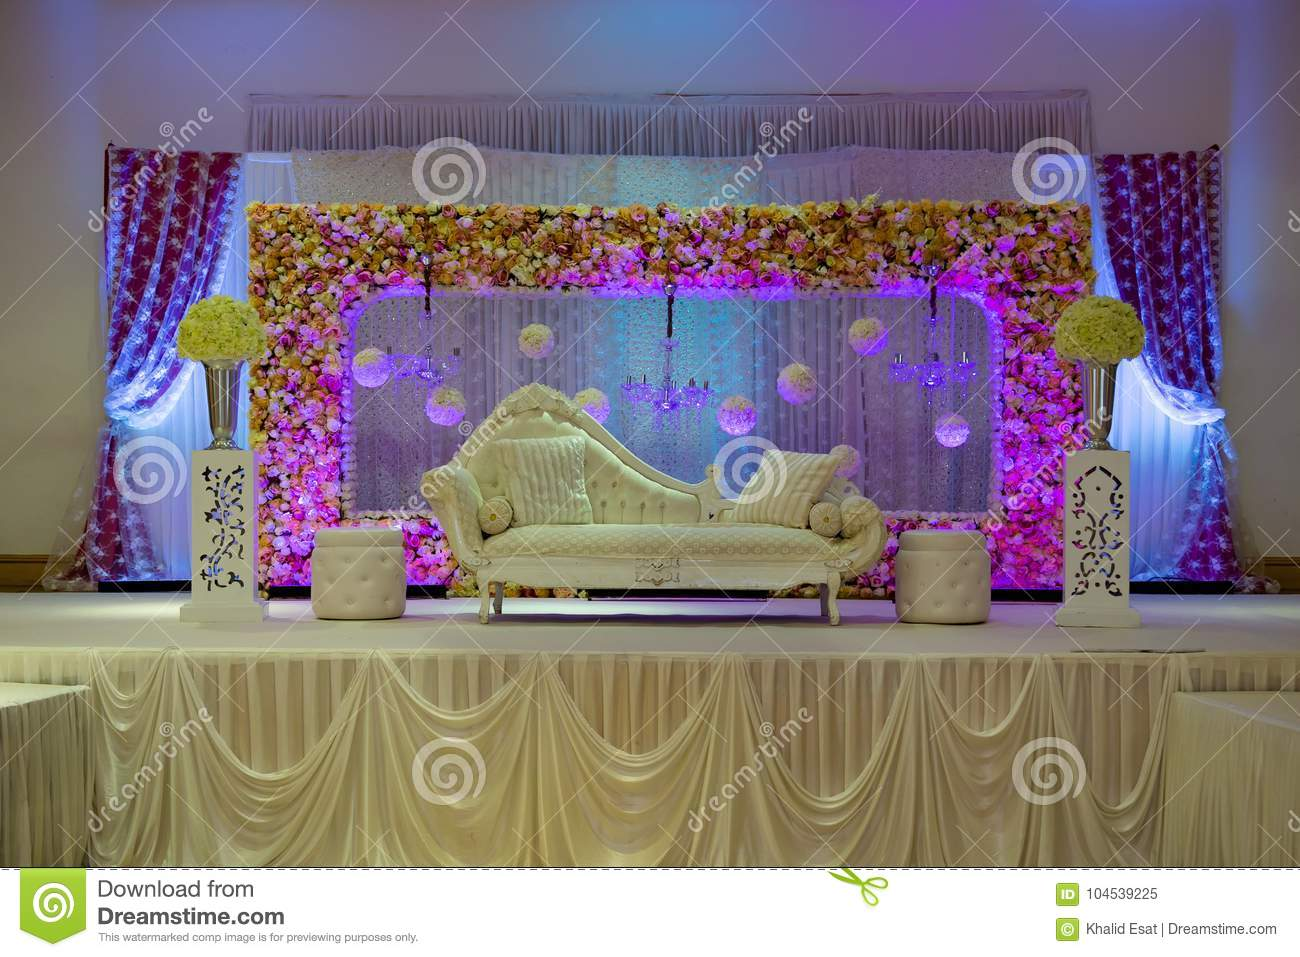 ideas hall decoration decorations stage wedding your ceremony amazing decor for